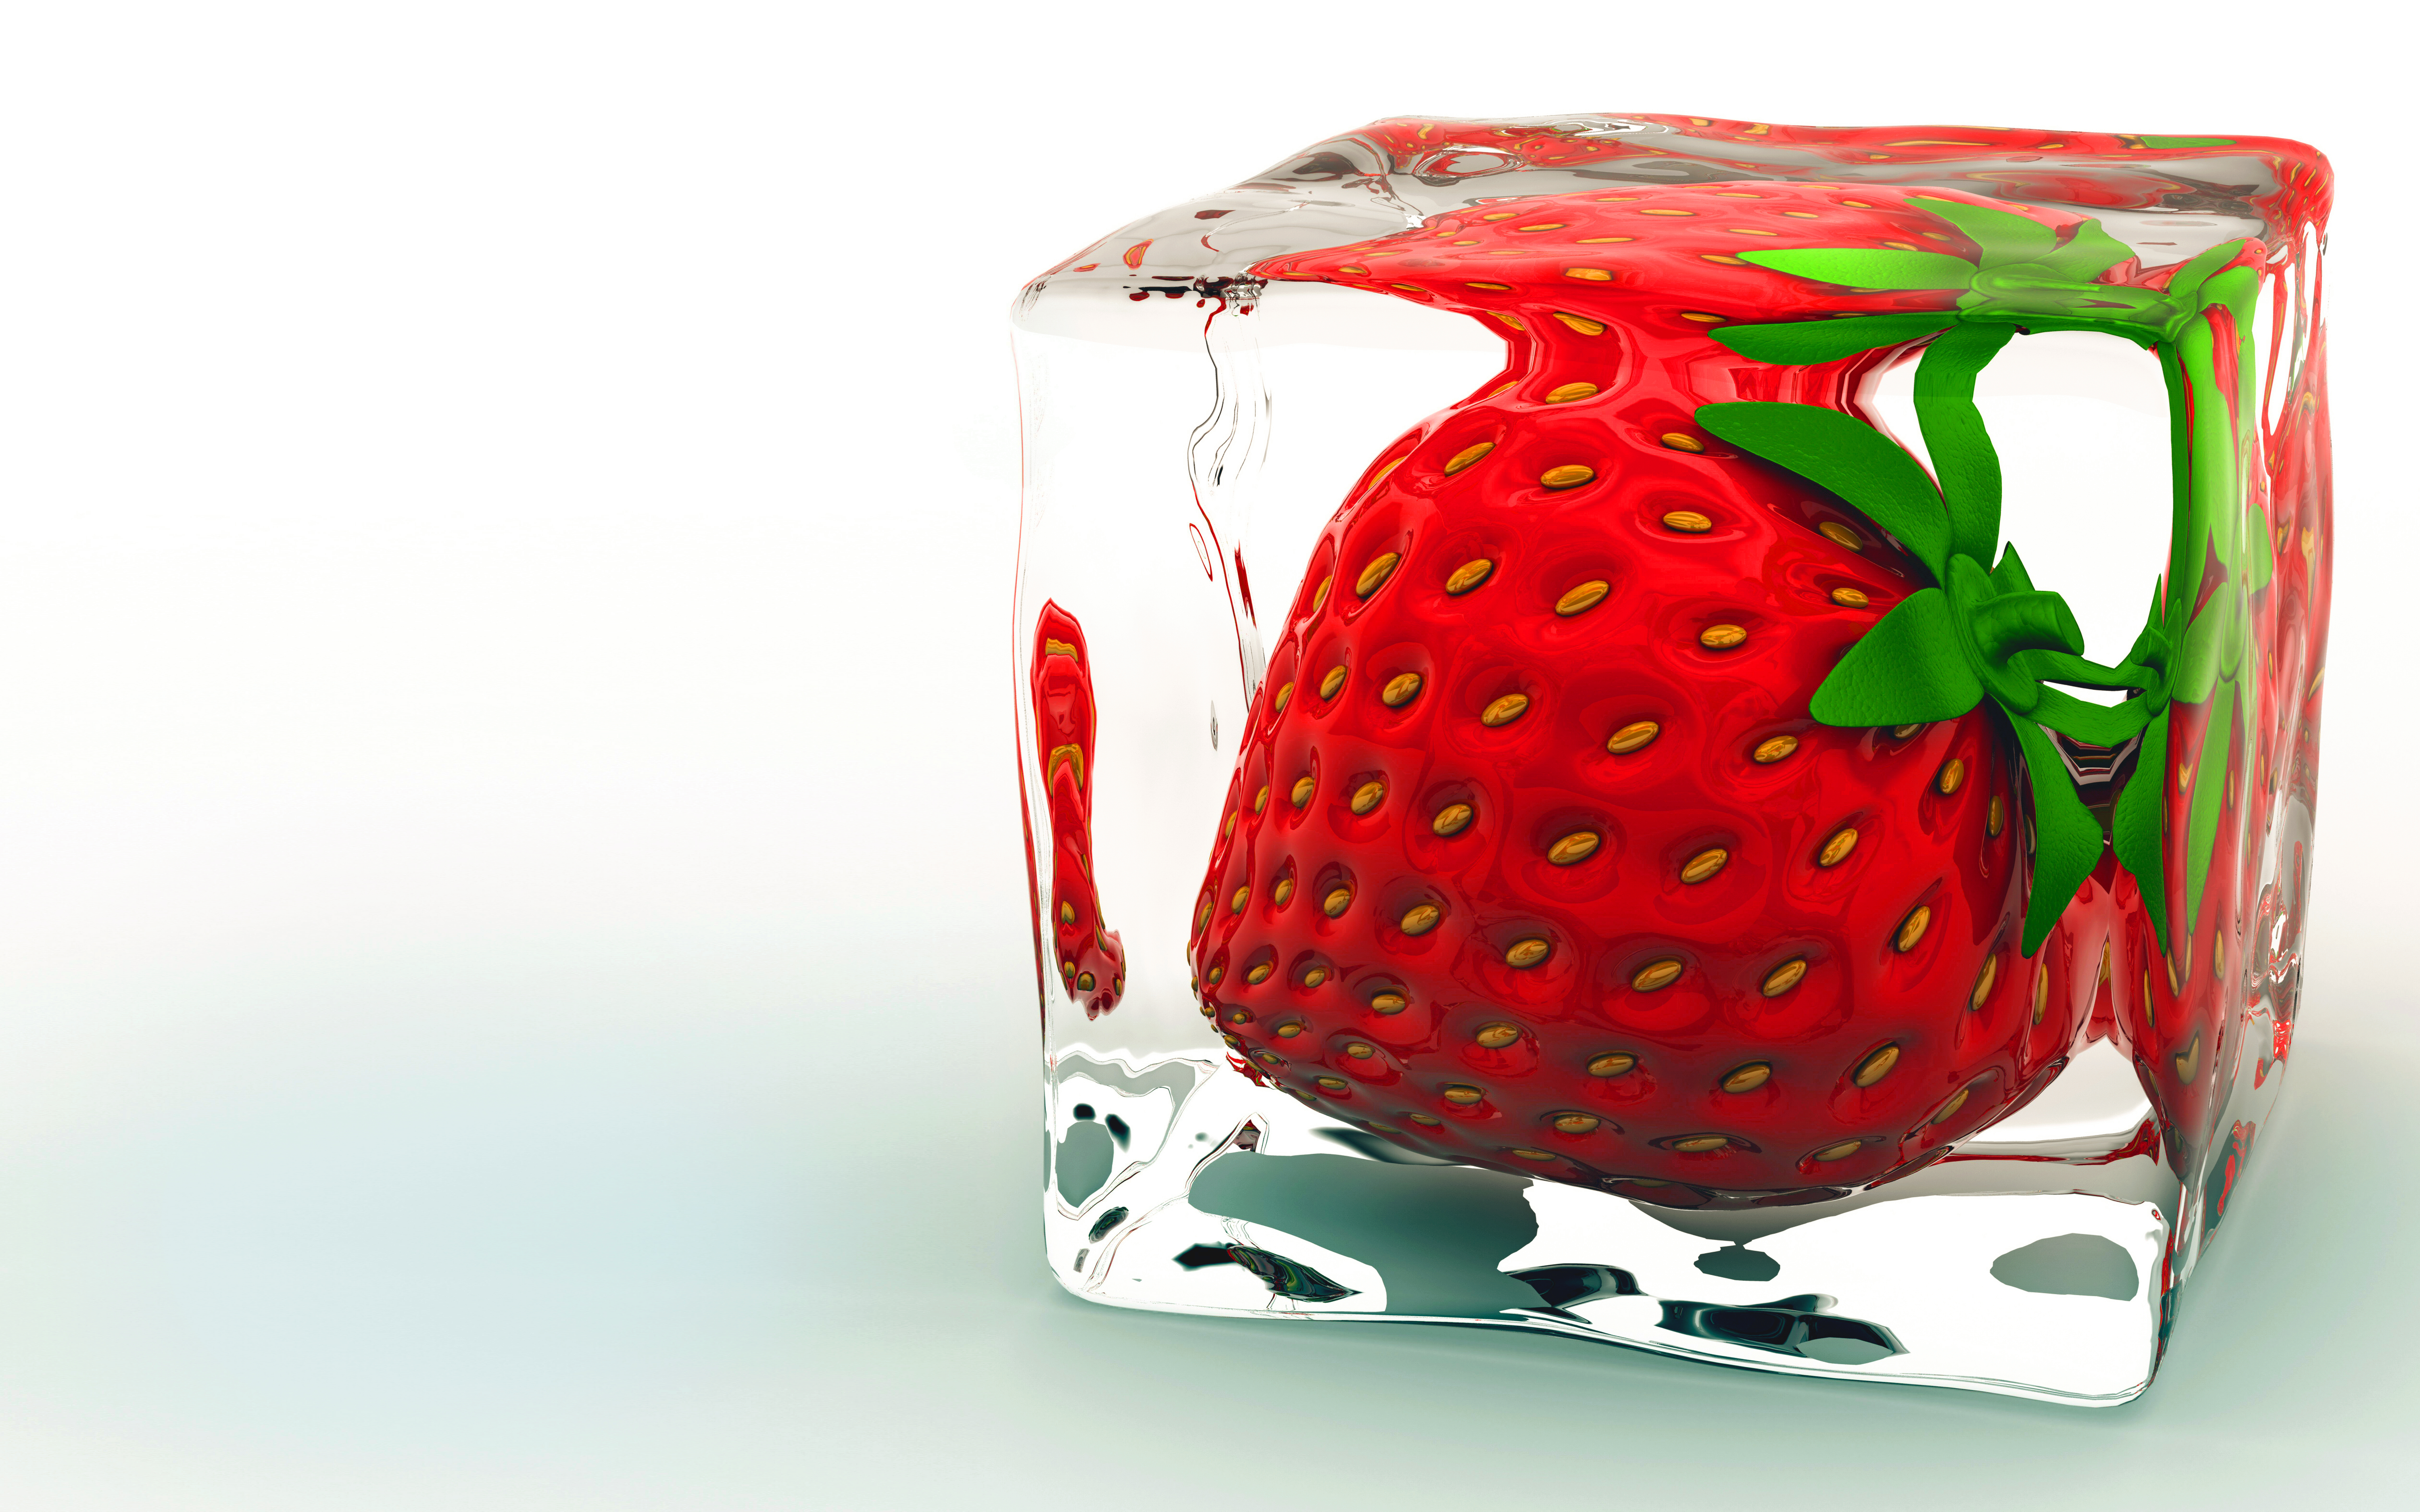 Strawberry In Icecube 8k Ultra Hd Wallpaper Background Image